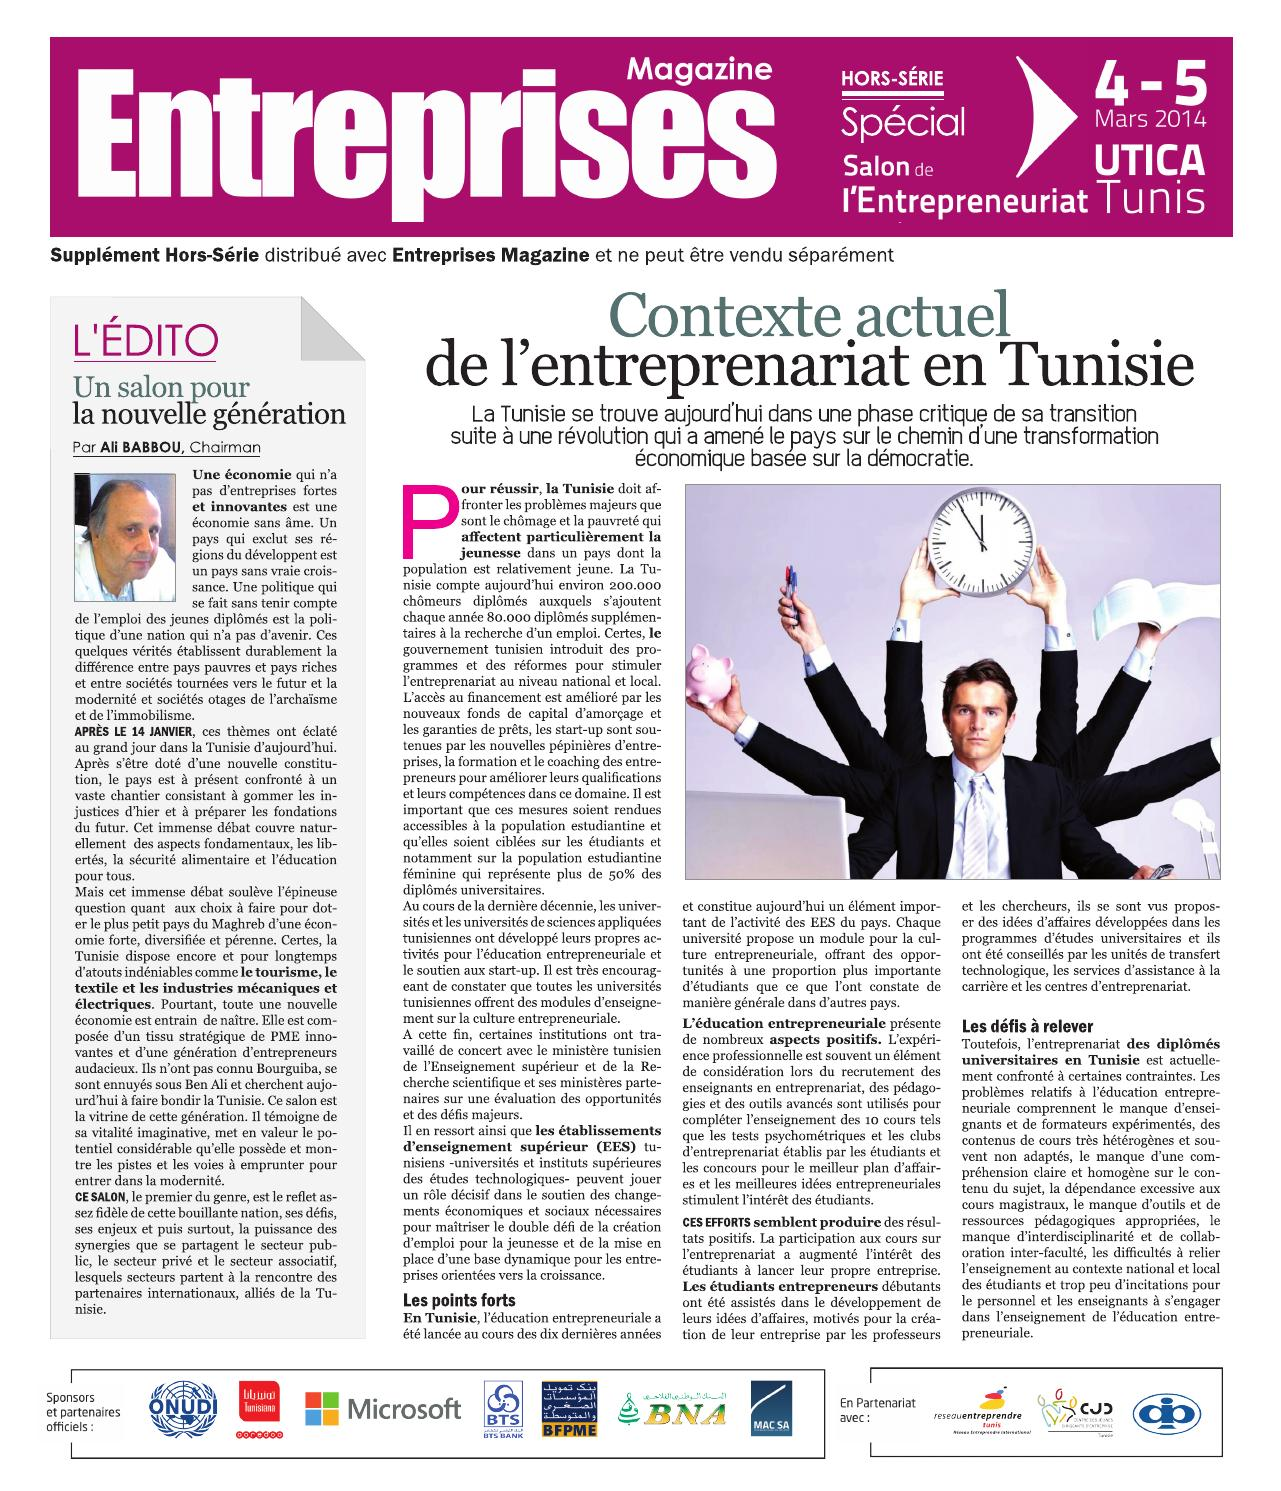 Journal du salon de l 39 entreprenariat tunisie by tunisie for Salon entreprenariat